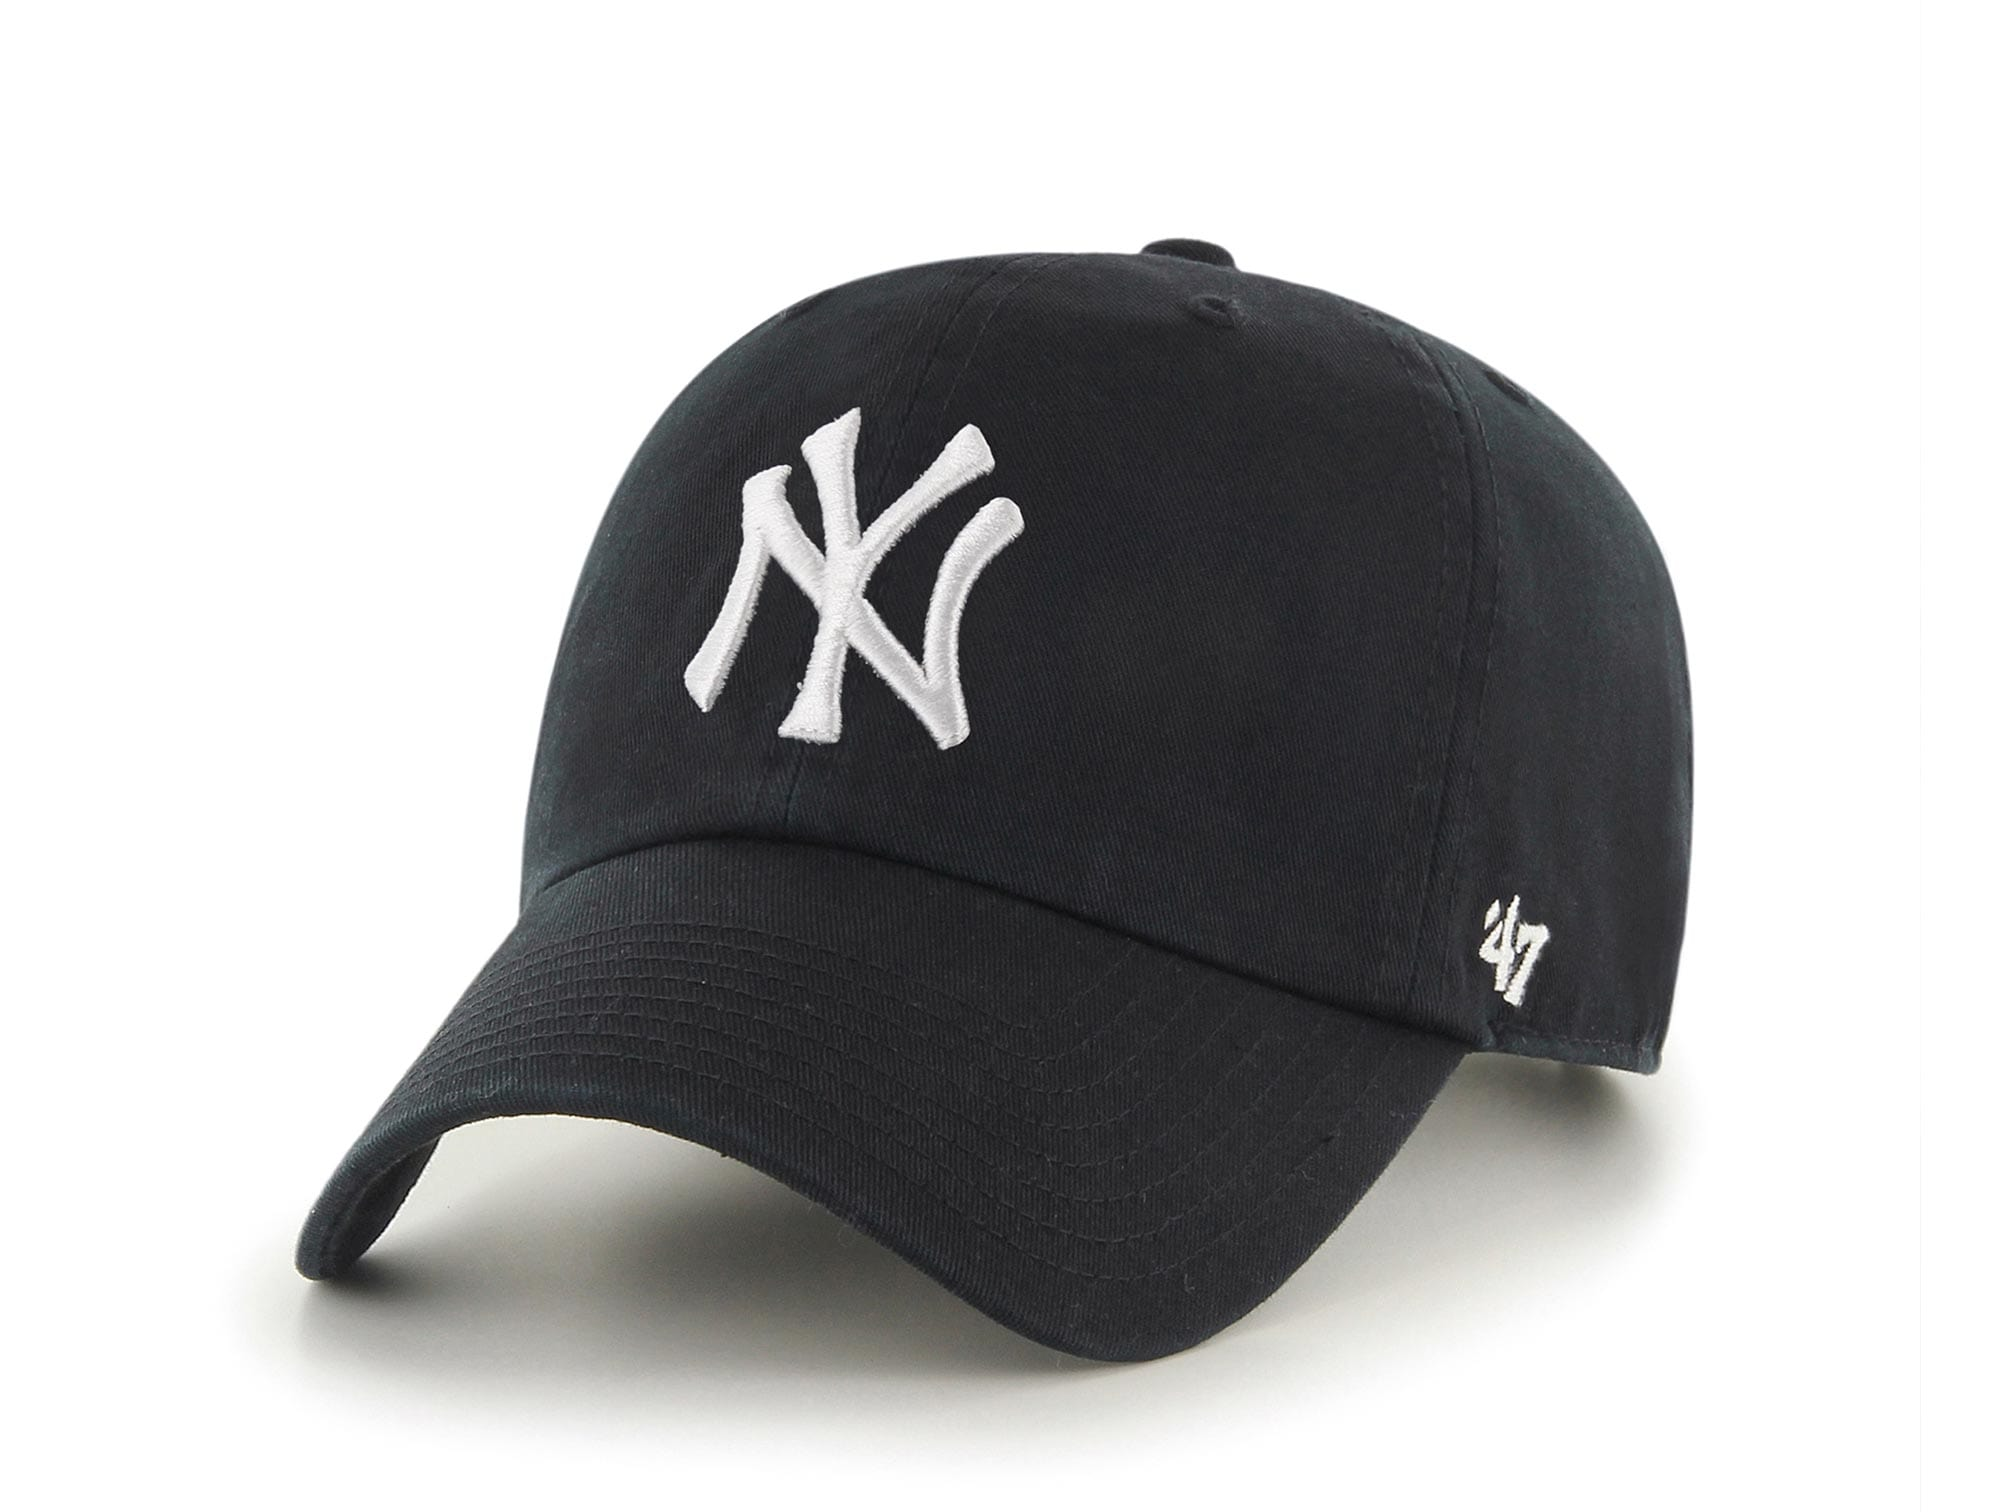 Jockey 47 New York Yankees Hombre Negro